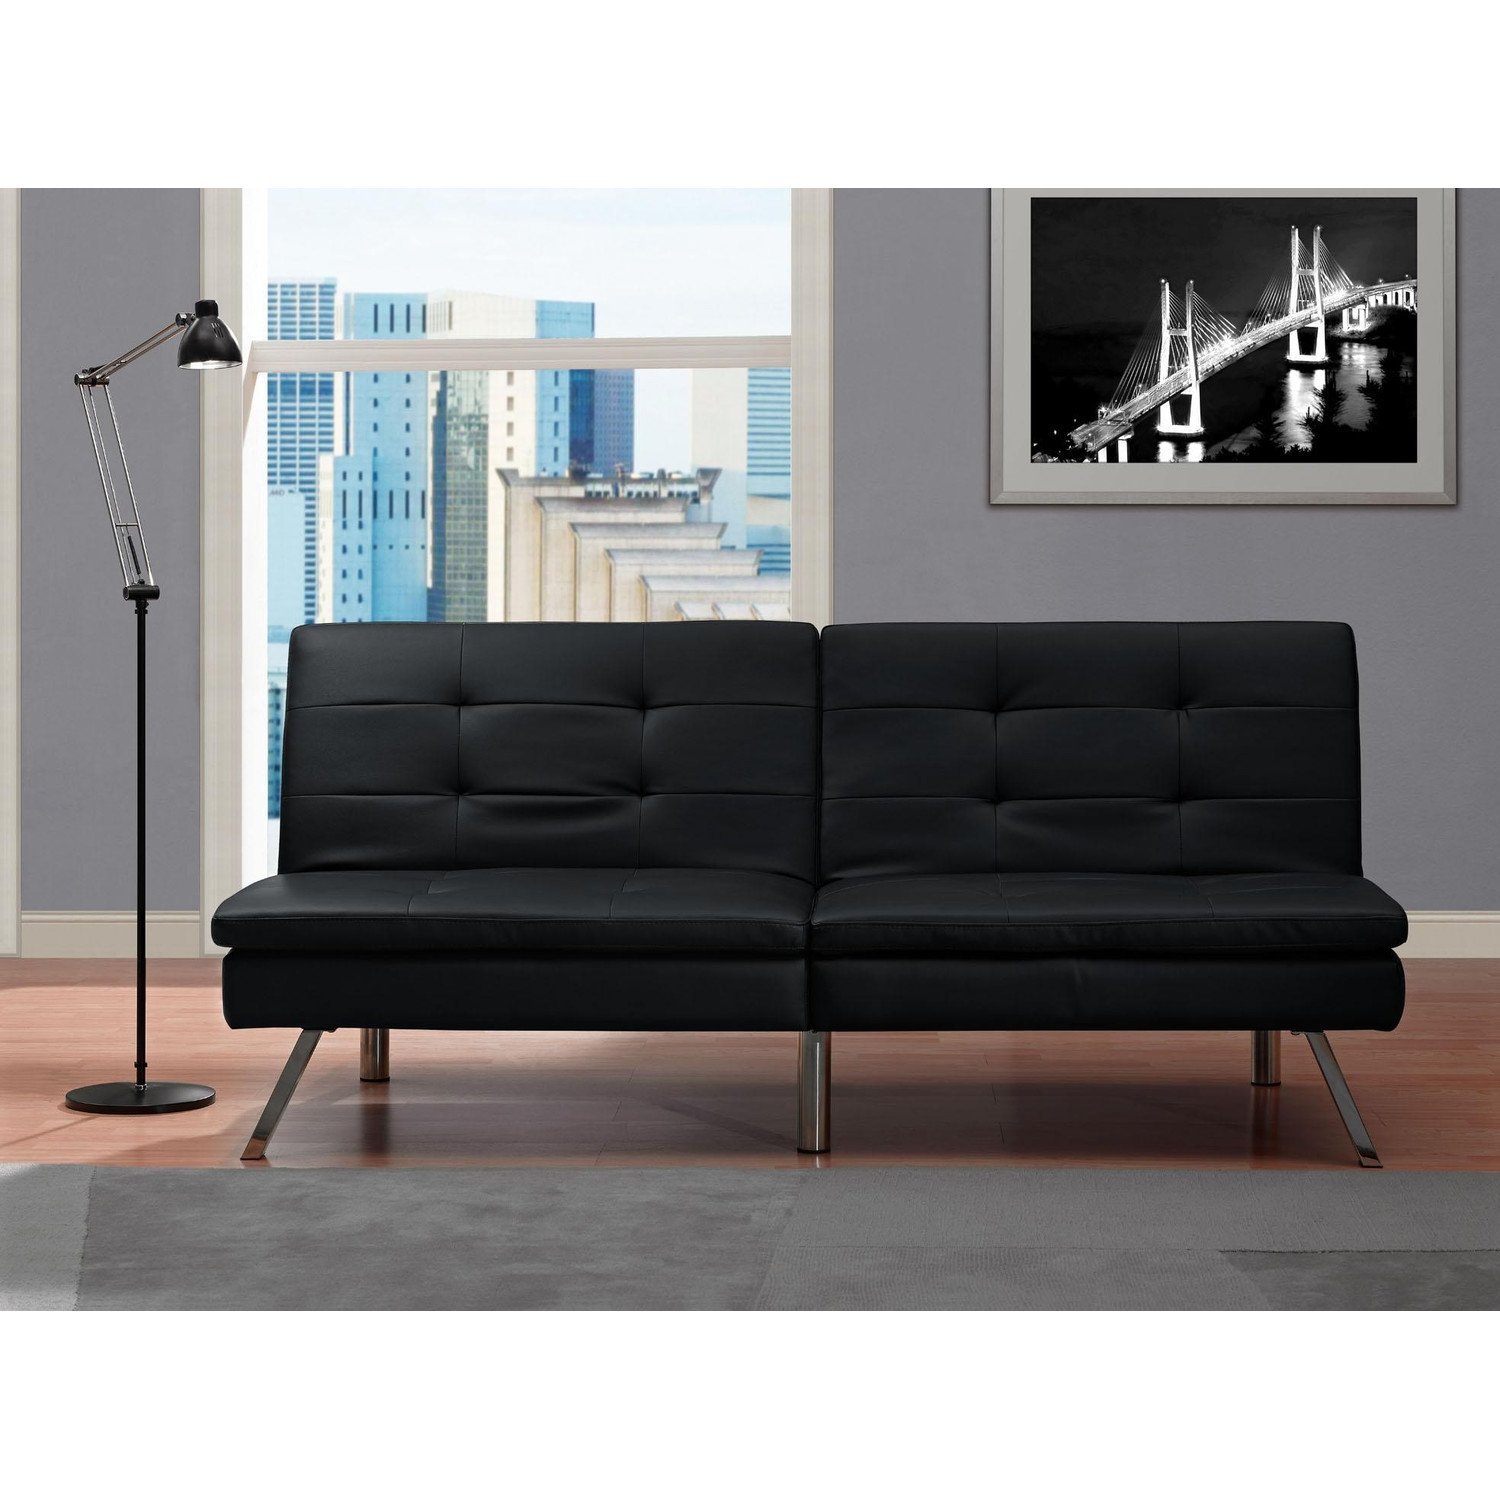 Amazon Black Modern Sectional Sofa Futon Convertible Sleeper